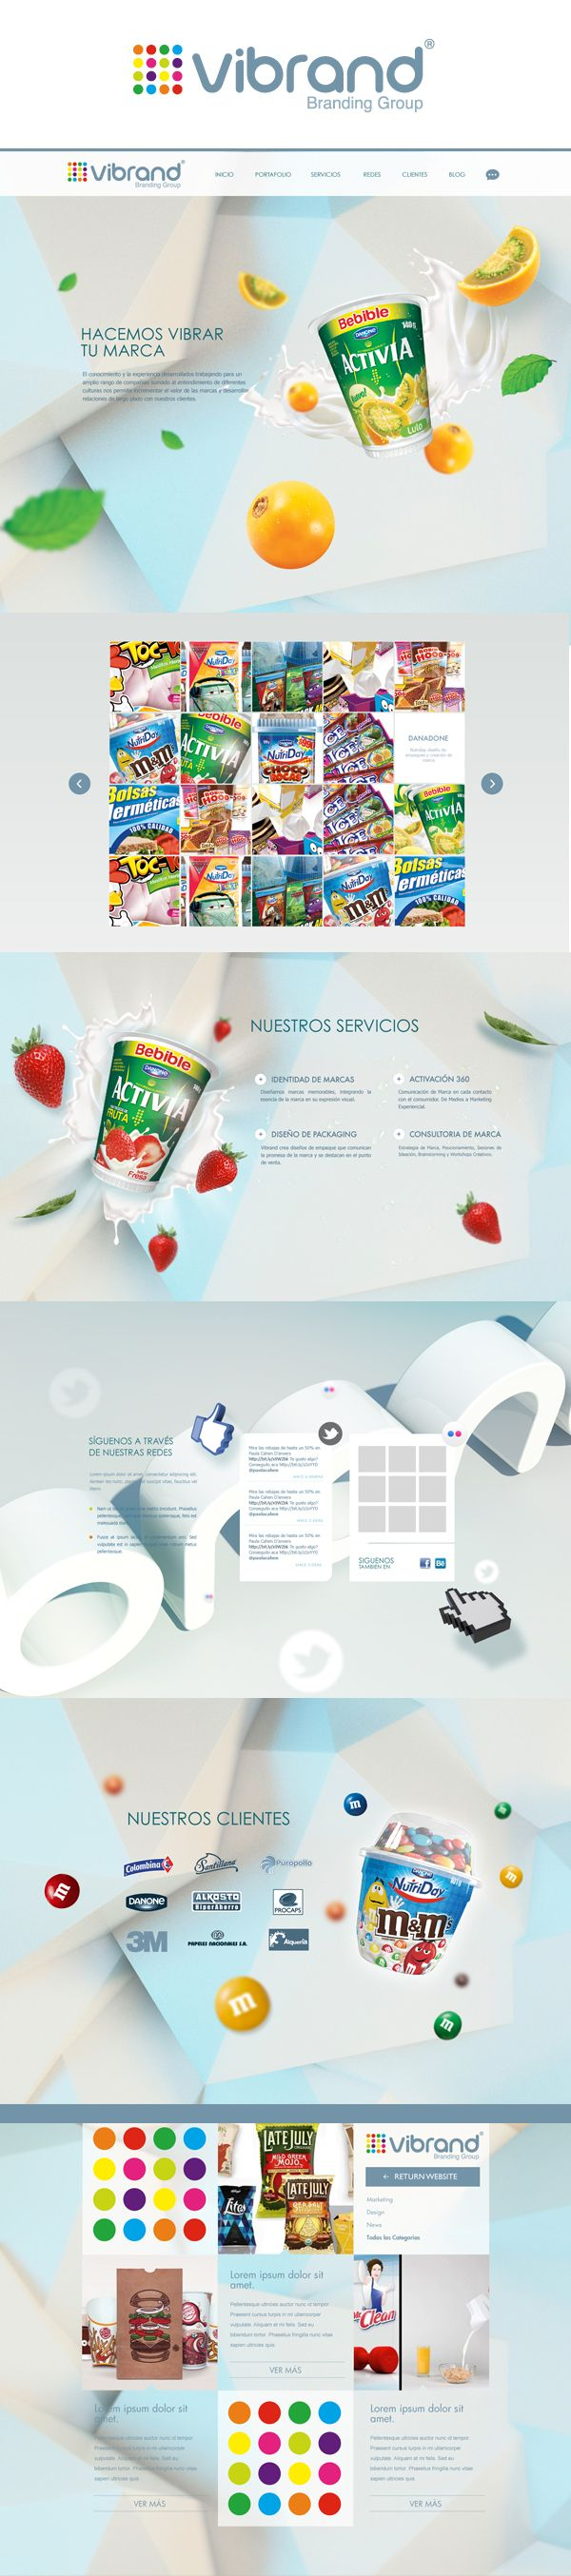 Vibrand Website - Branding Group by Andres Rodriguez, via Behance please visit this website at. www.vibrand.com.co